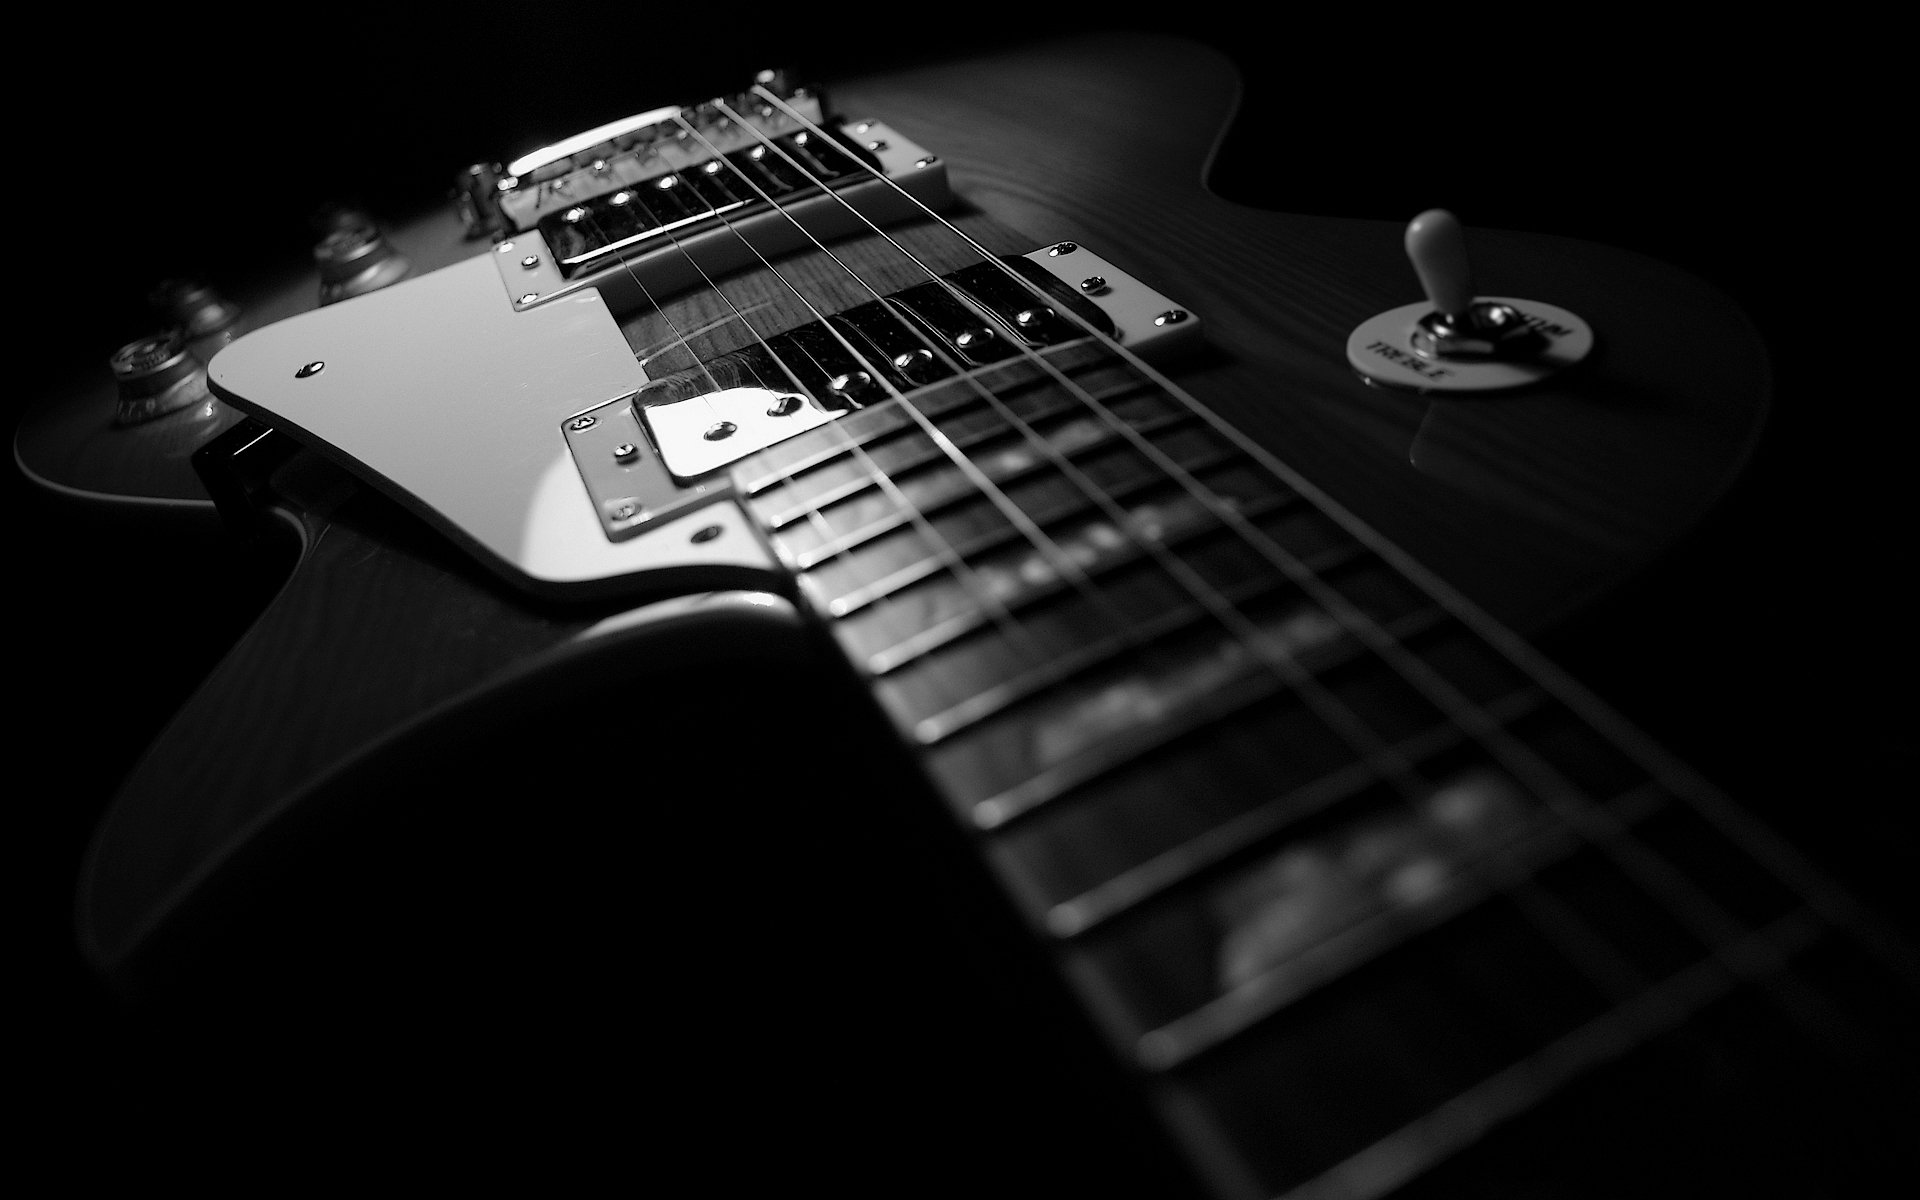 665 Guitar Hd Wallpapers Background Images Wallpaper Abyss